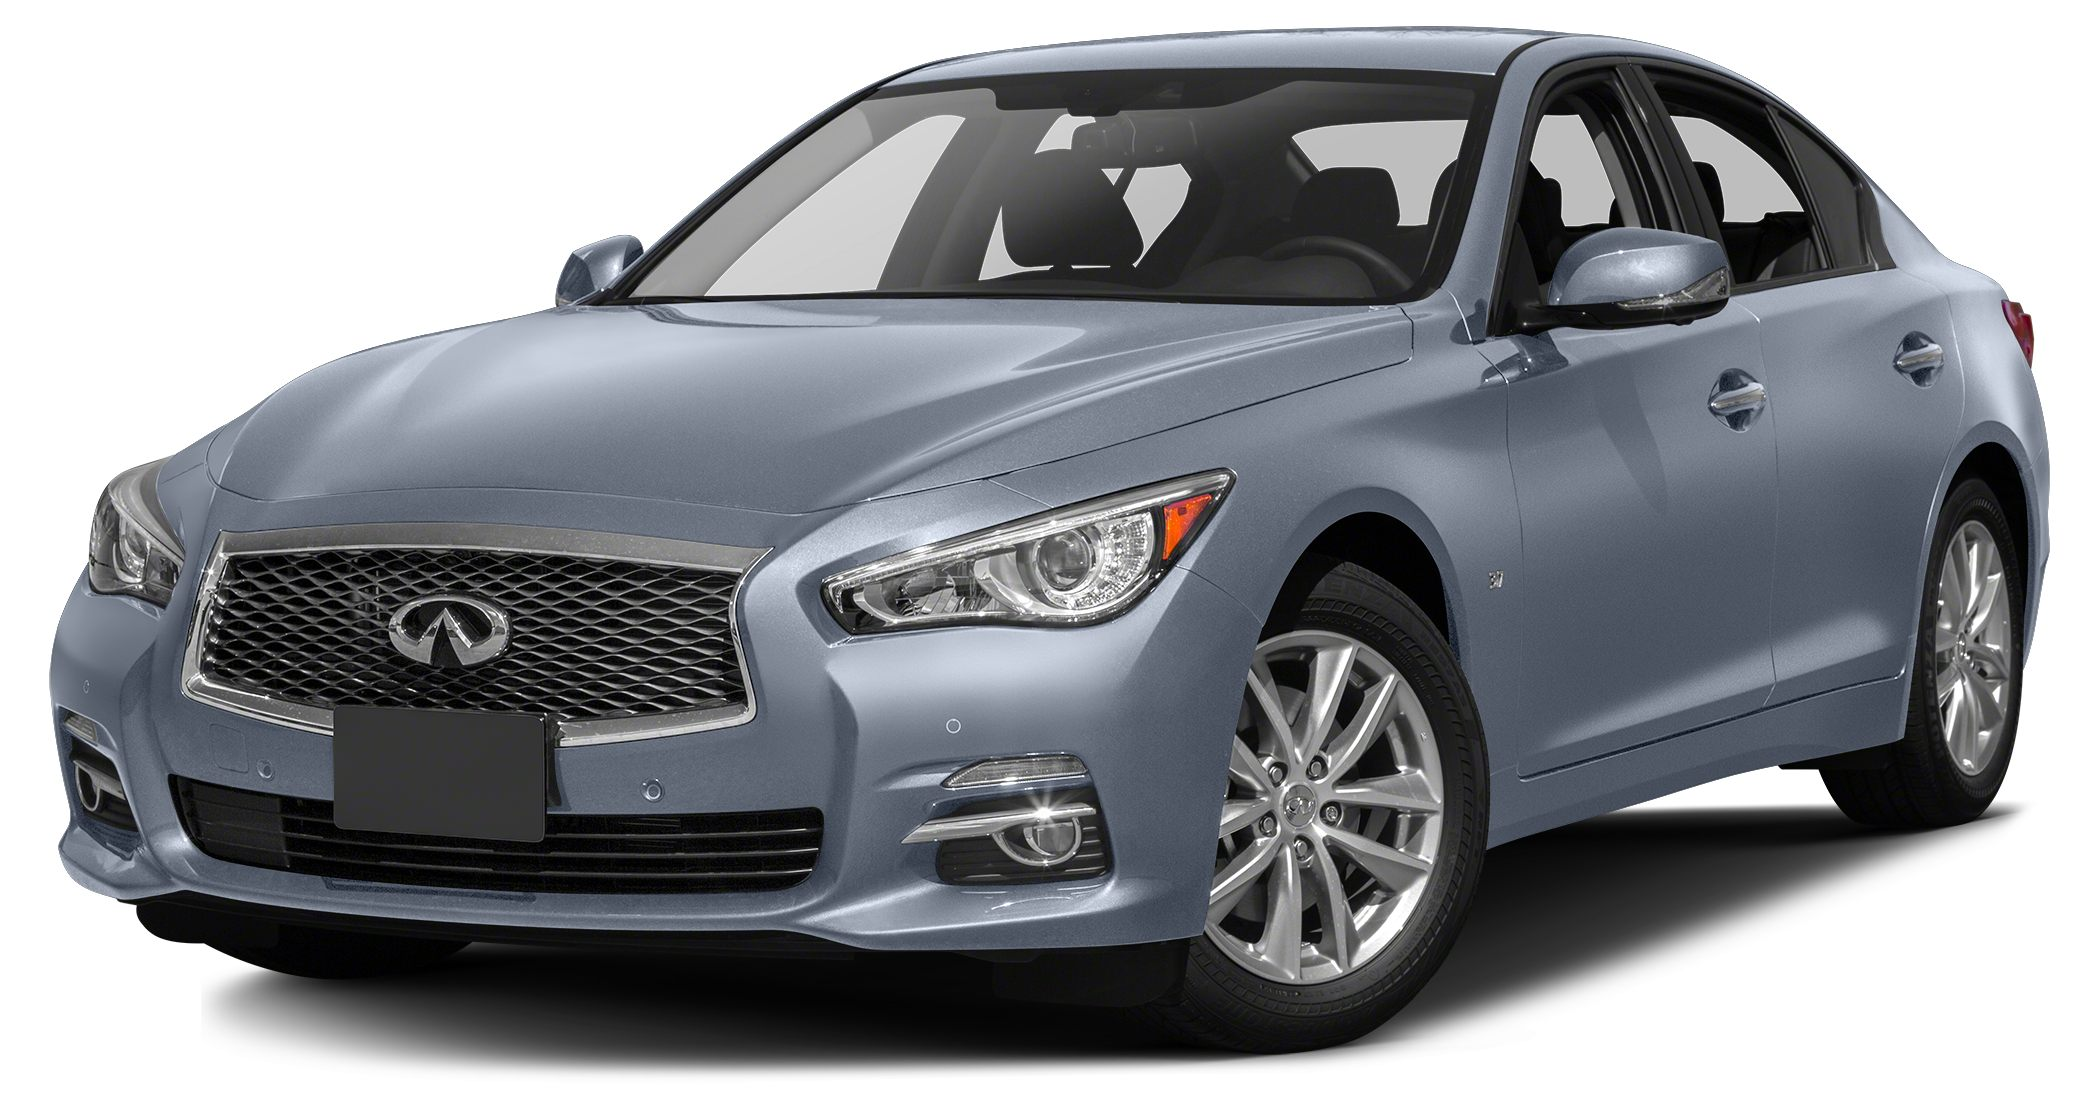 2014 INFINITI Q50 Base WE SELL OUR VEHICLES AT WHOLESALE PRICES AND STAND BEHIND OUR CARS  CO